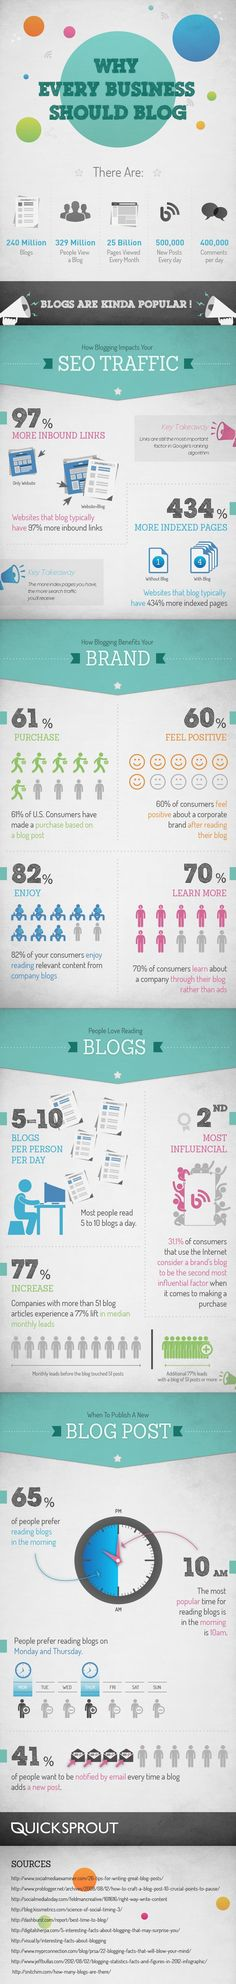 Why Every Business Should Blog - Webmag.co | Digital Resources for Net Professionals